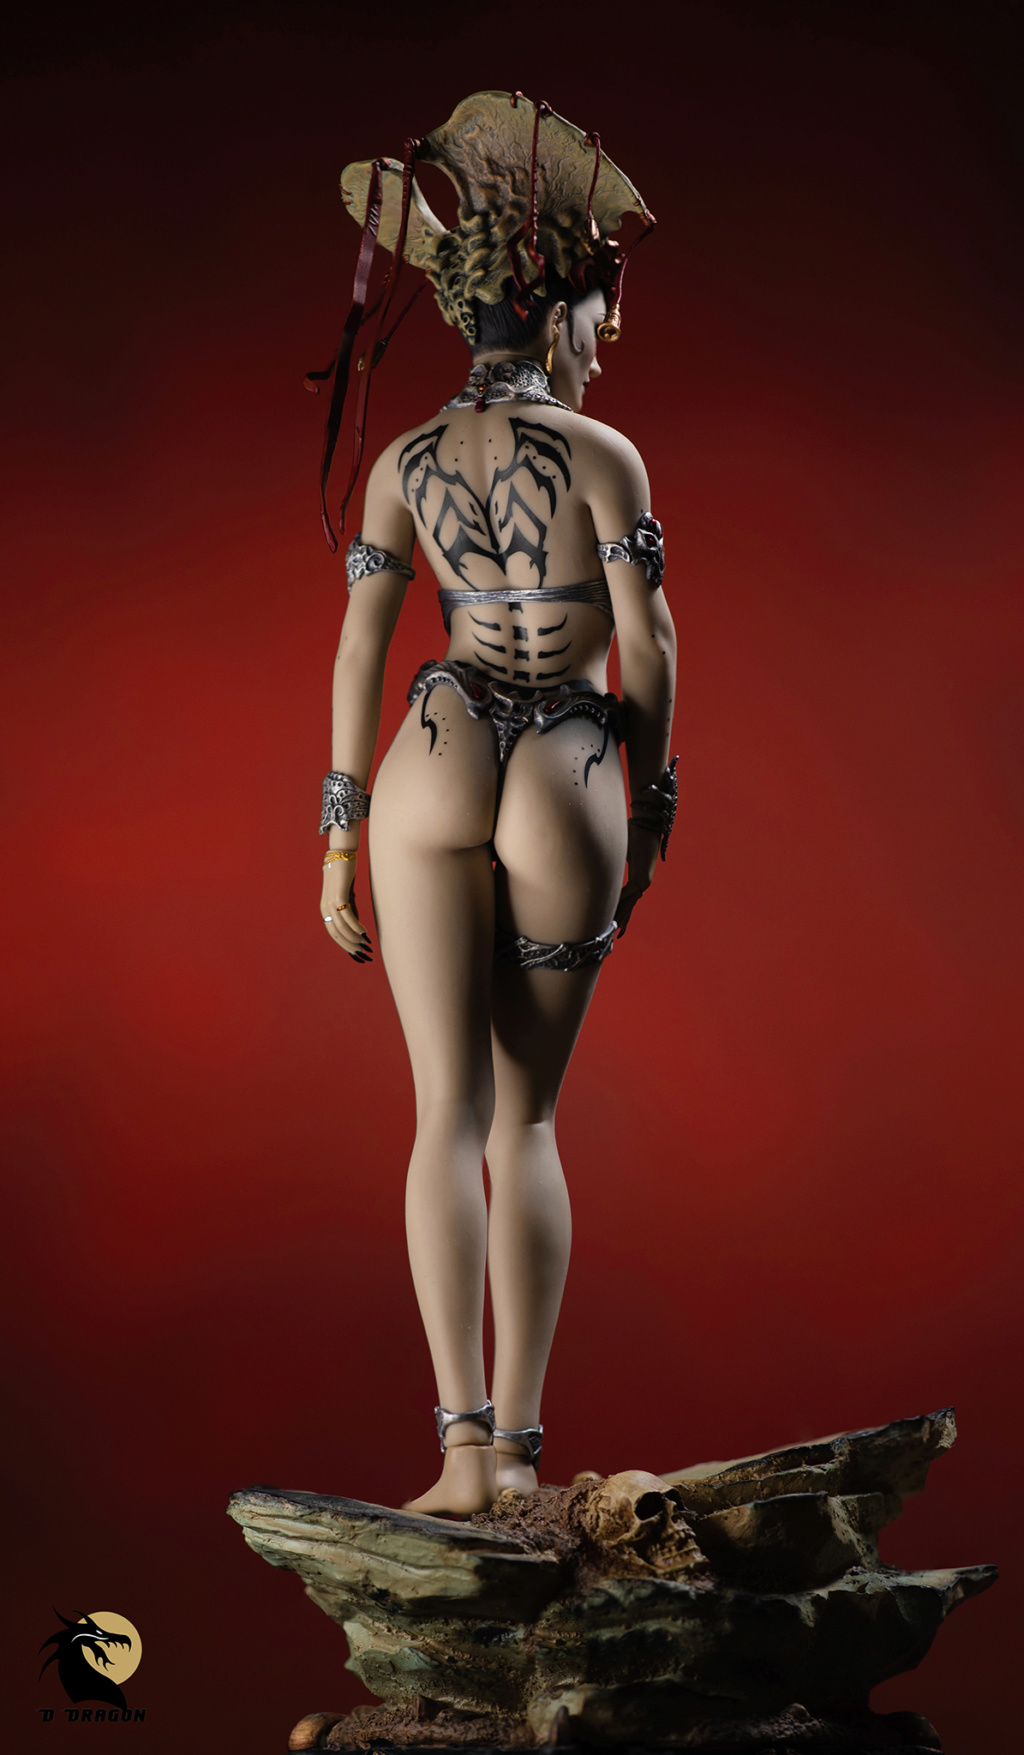 tbleague - NEW PRODUCT: Tbleague x SIDESHOW New: 1/6 Court of the Dead: Gethsemoni The Dead Queen action figure (PL2019-147) - Page 2 Gethse15